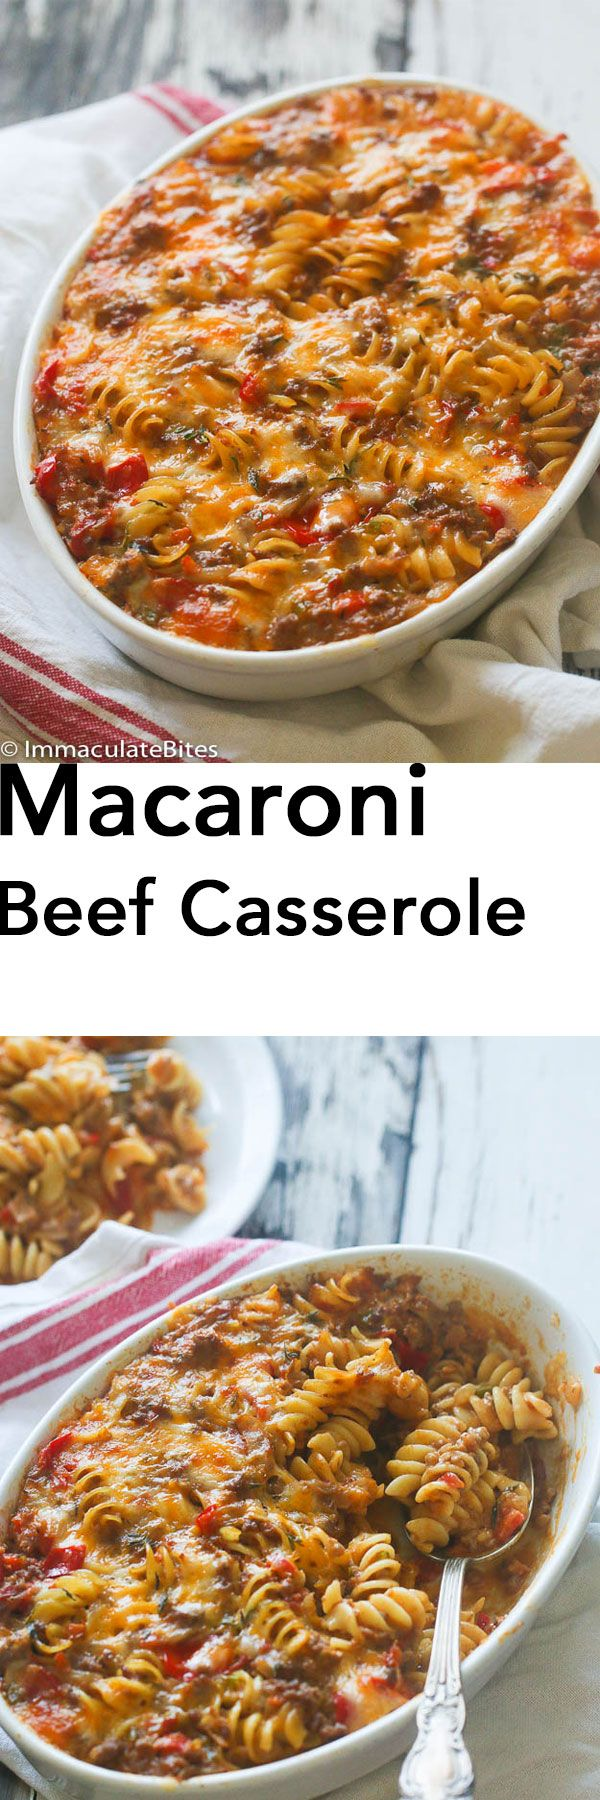 Easy Macaroni Beef Casserole made with an aromatic blend of spices , beef , tomatoes and some good old cheese. A great meal that the whole family would enjoy. S